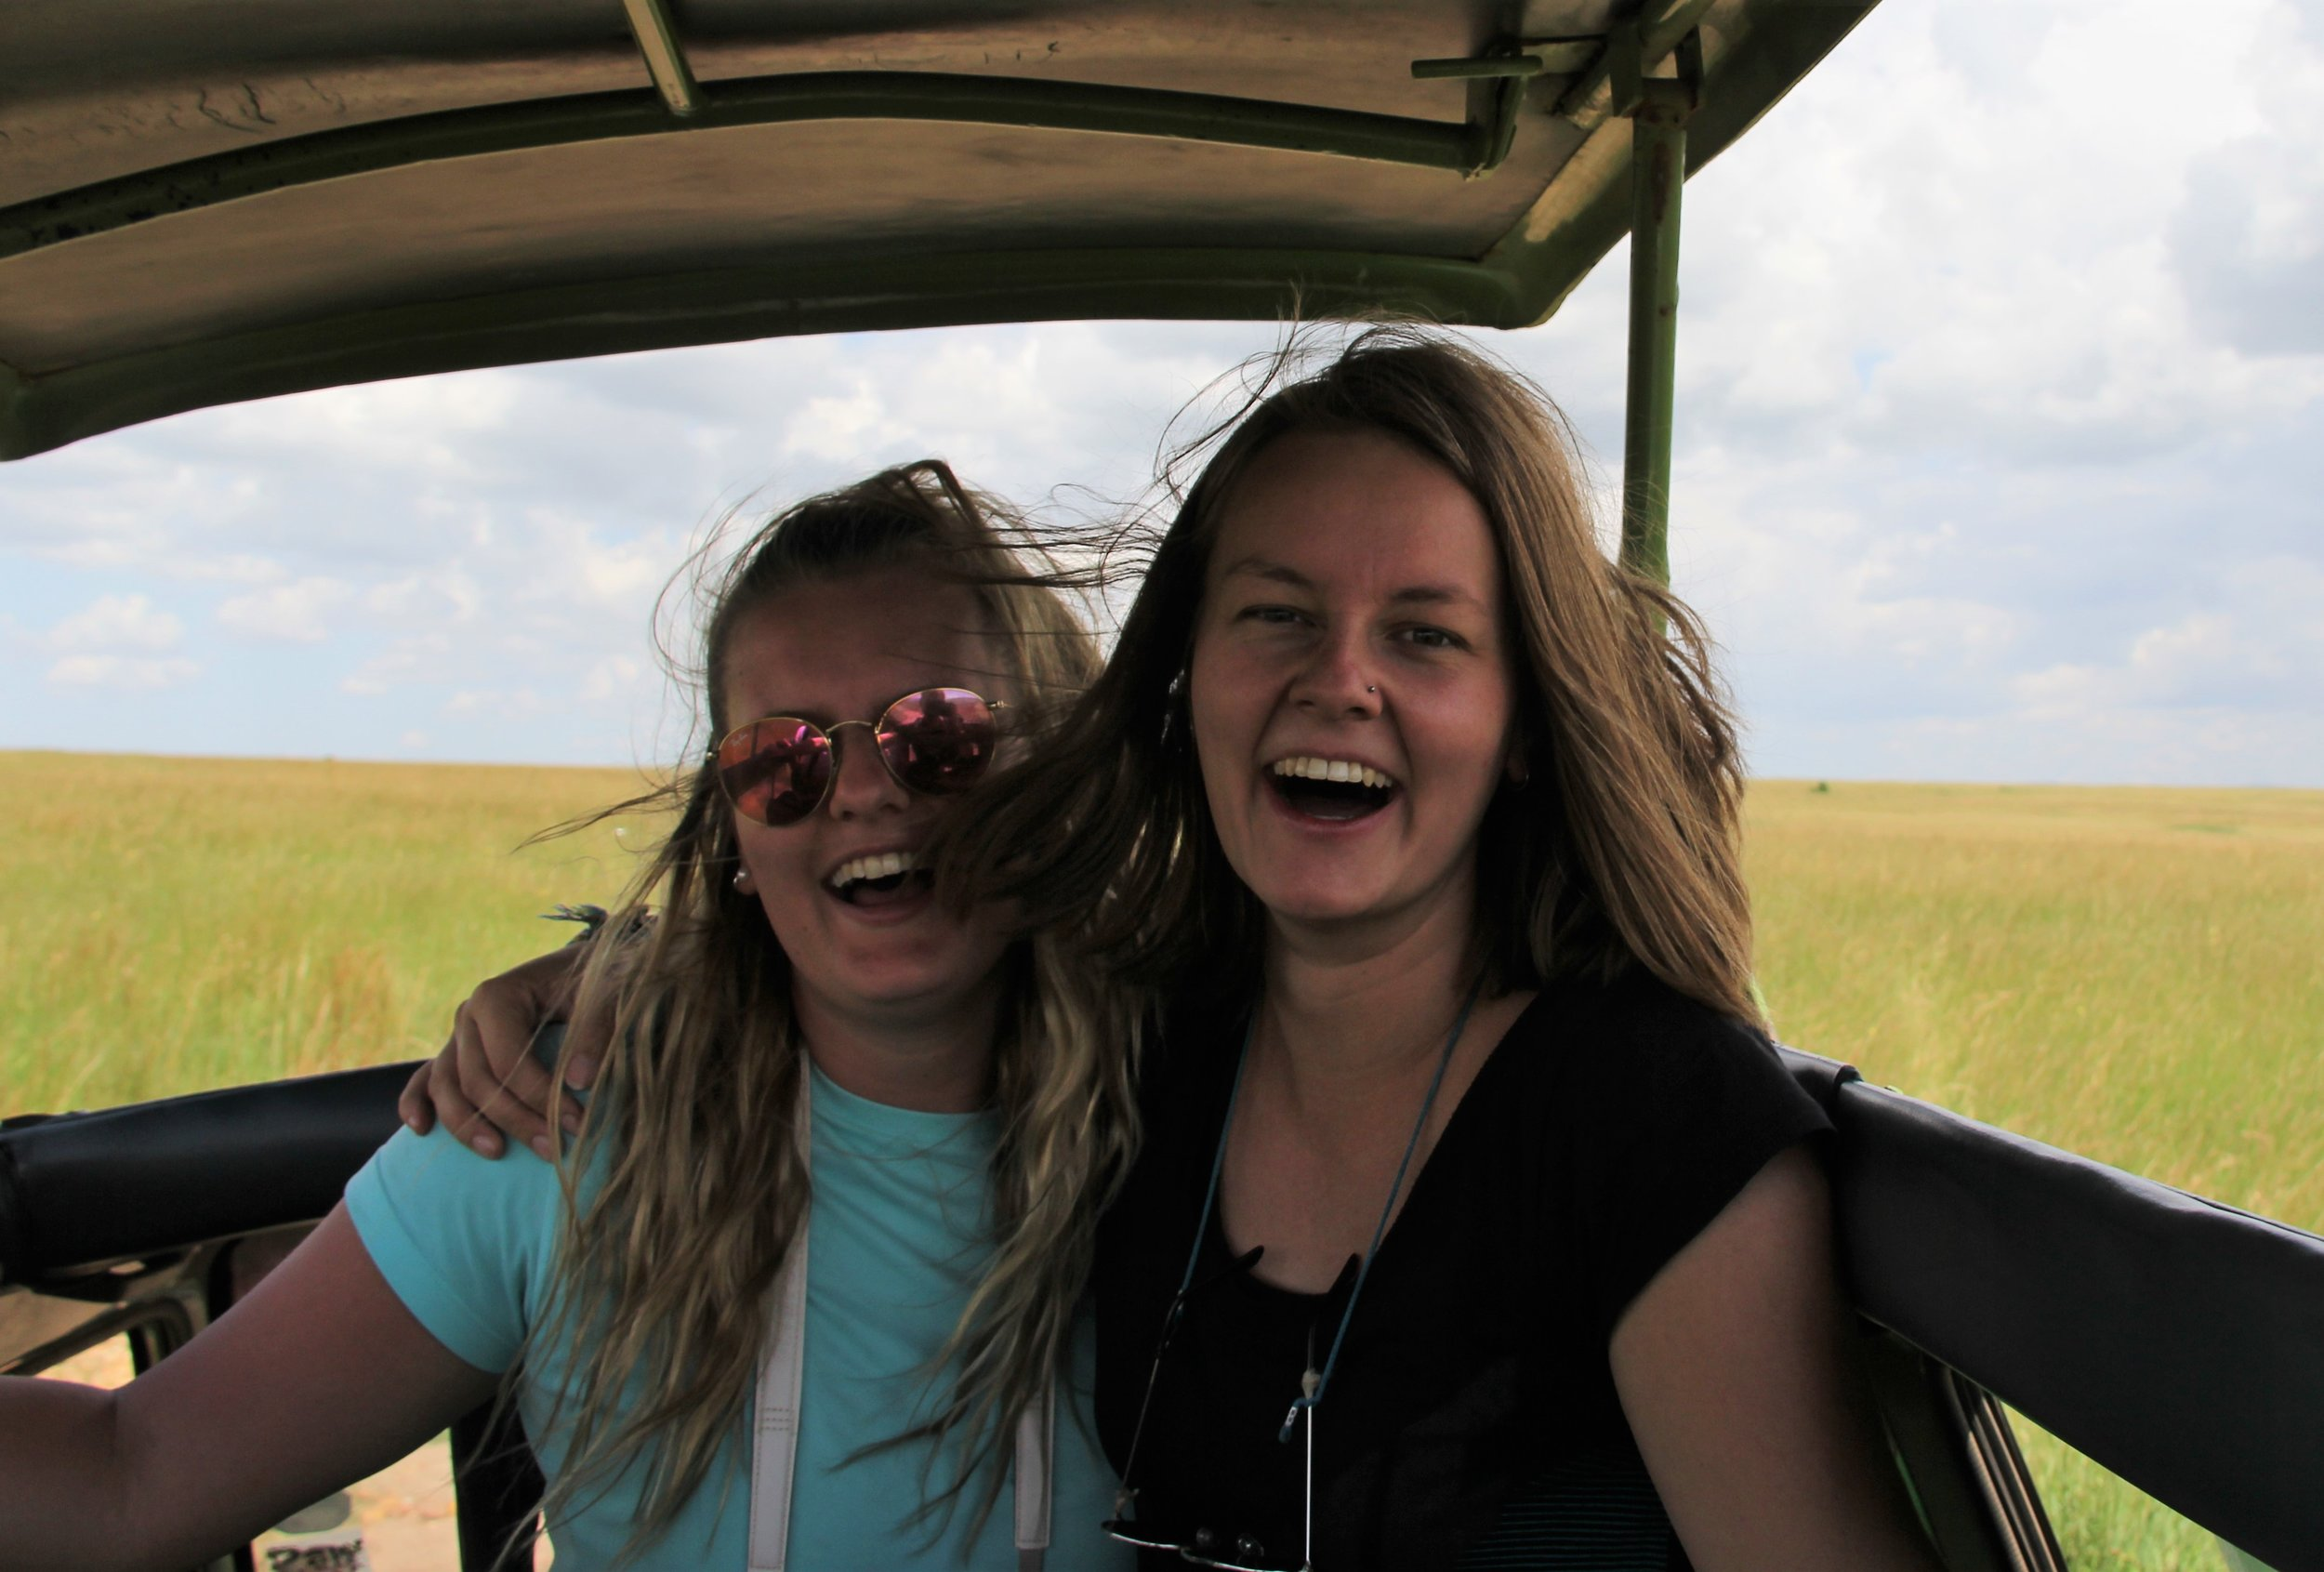 Aurora and her sister (Kristina) were blown away by the safari